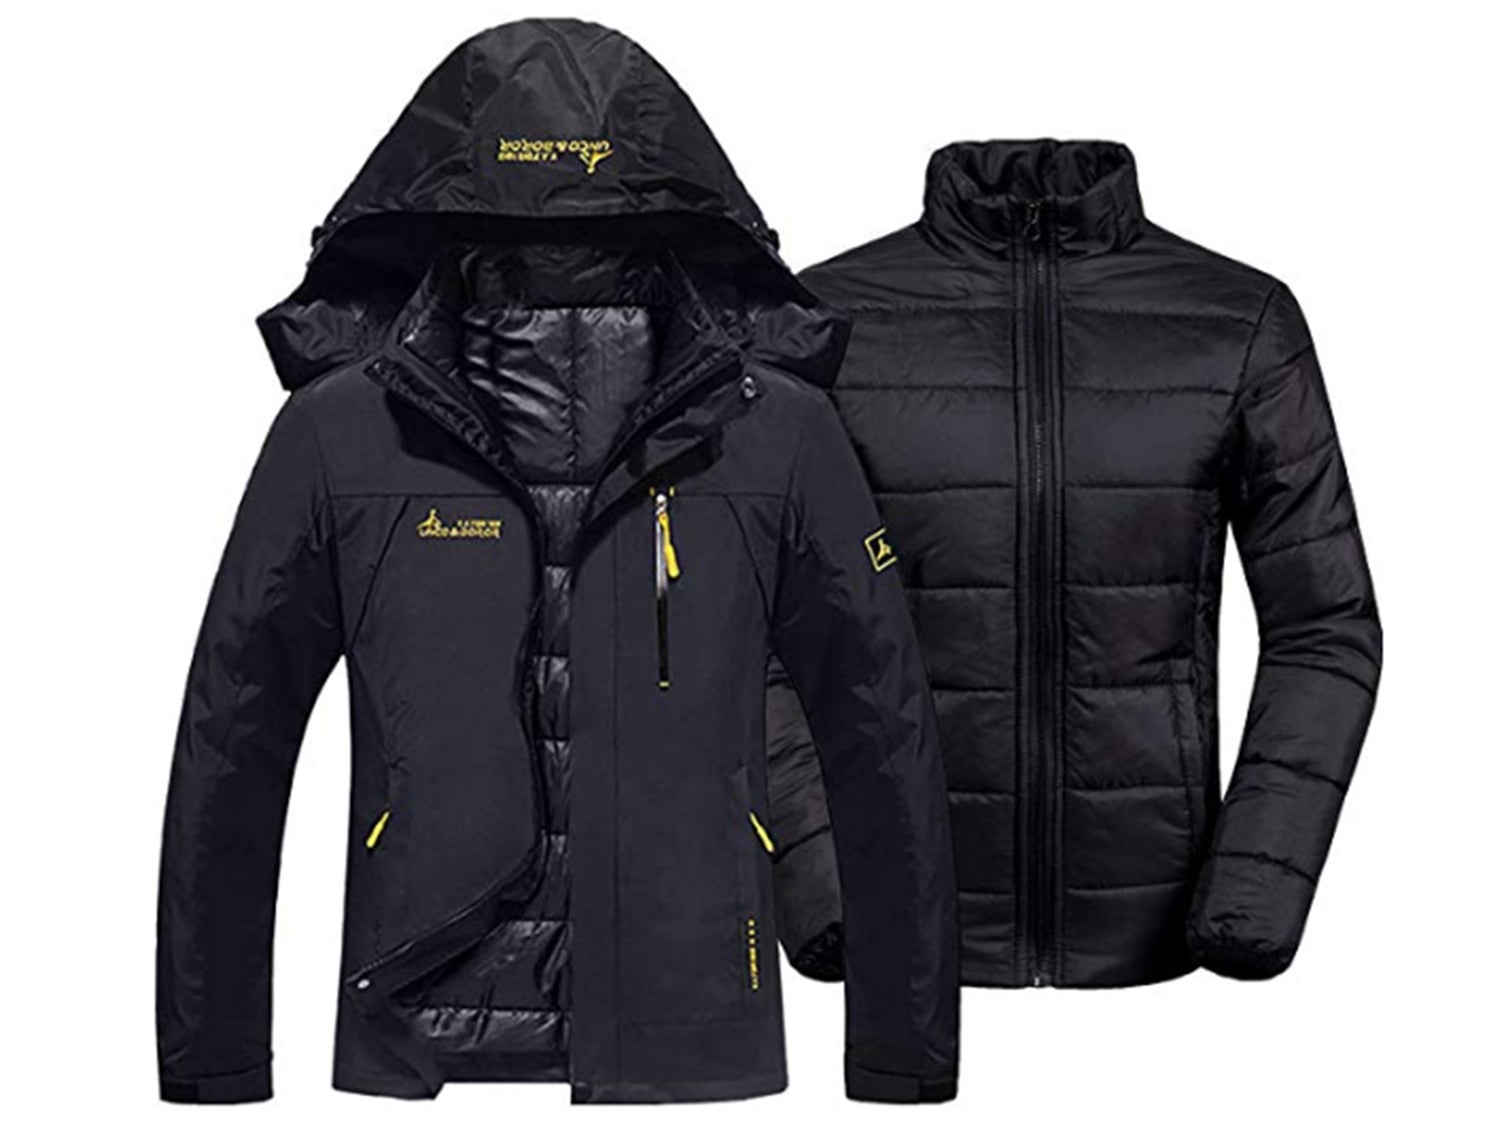 GEMYSE Womens Waterproof 3-in-1 Ski Snow Jacket Puffer Liner Insulated Winter Coat